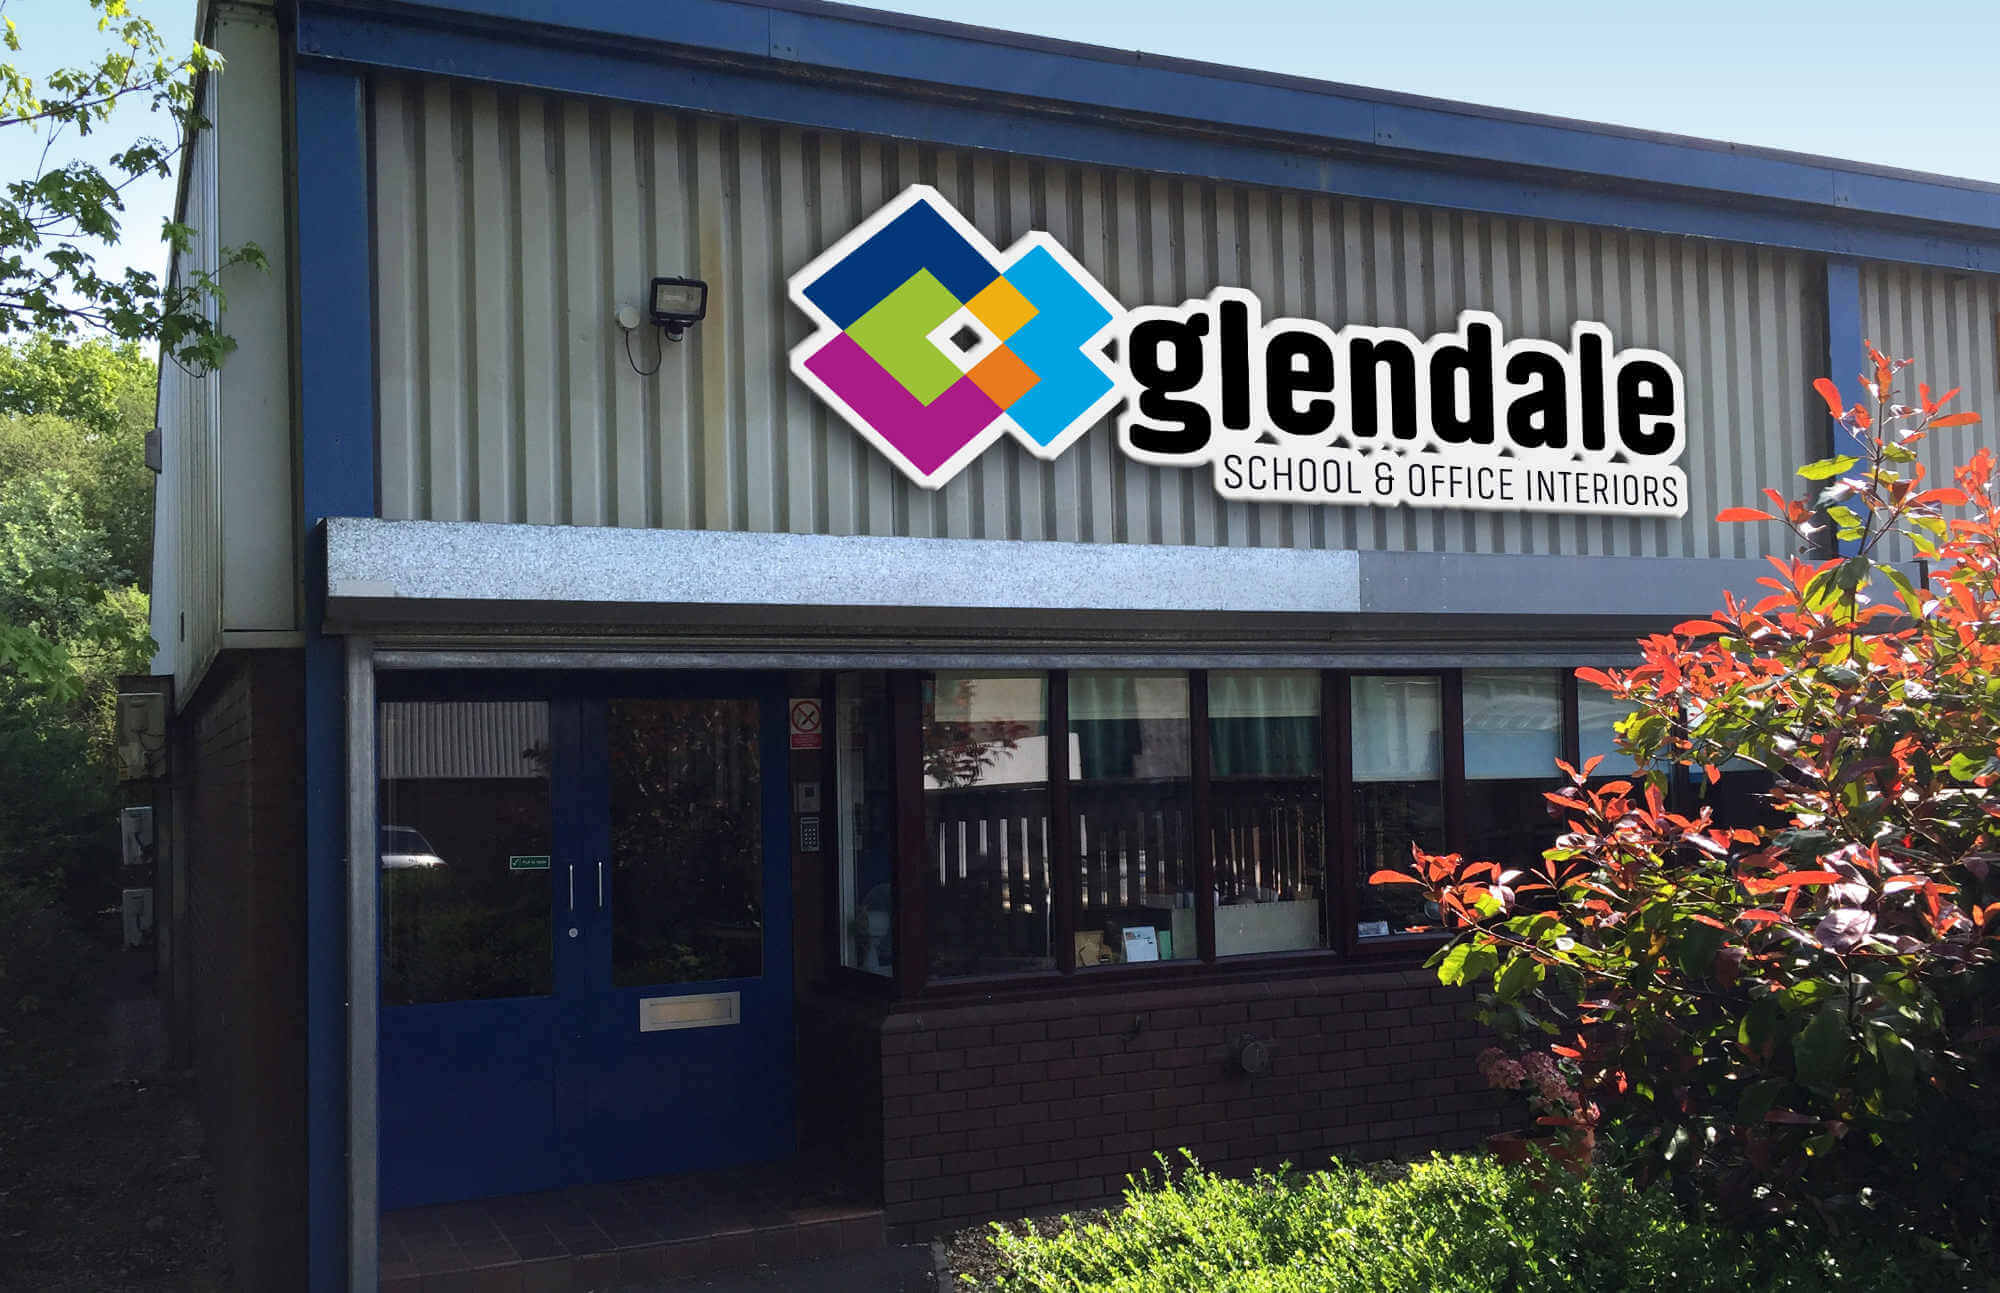 Glendale UK Office Signage